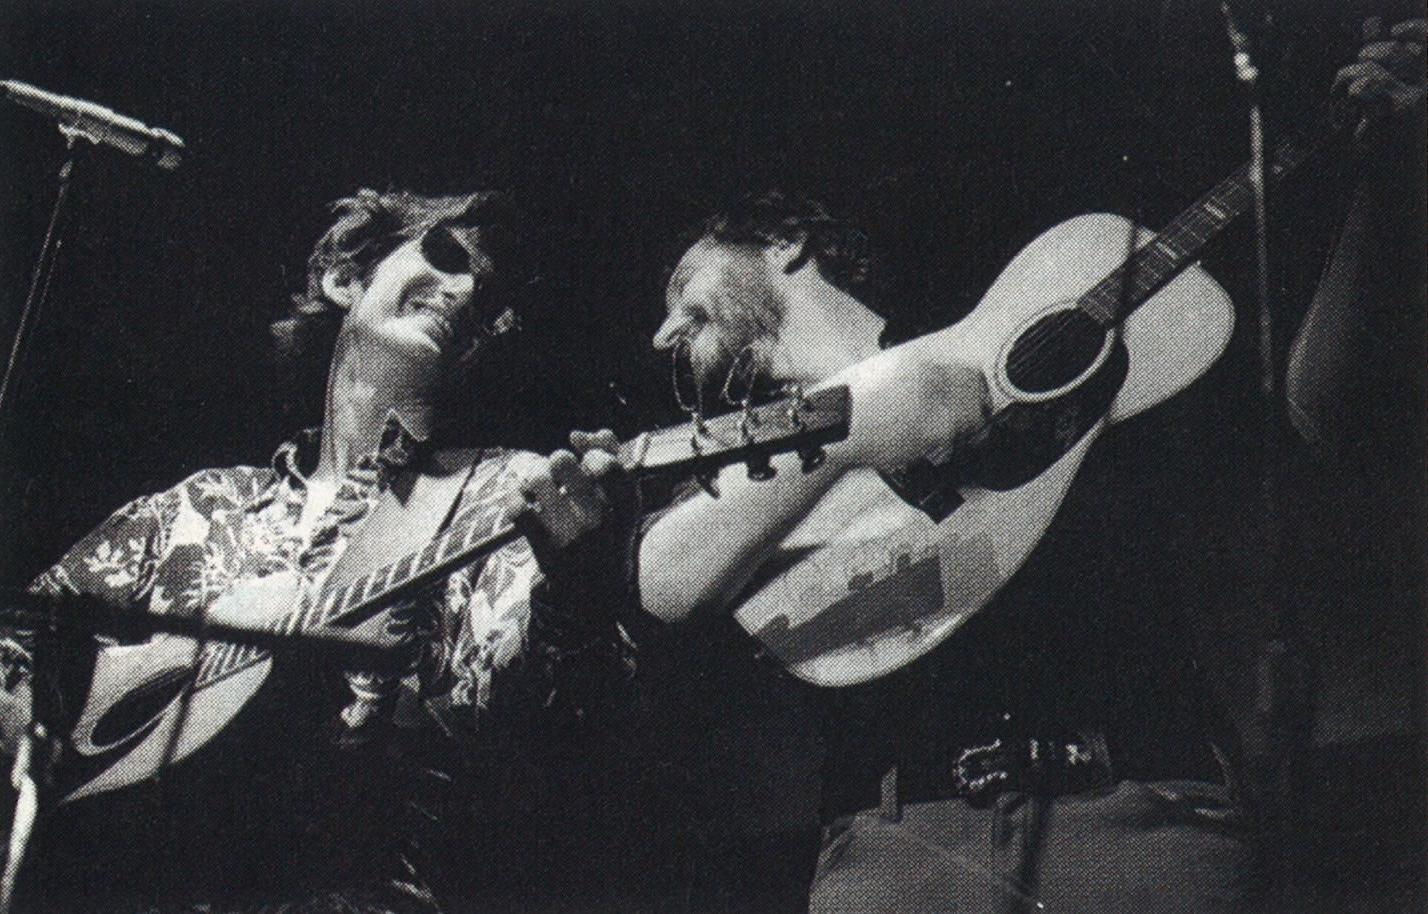 Jamming with fellow troubadour Jerry Jeff Walker (right) in 1974.